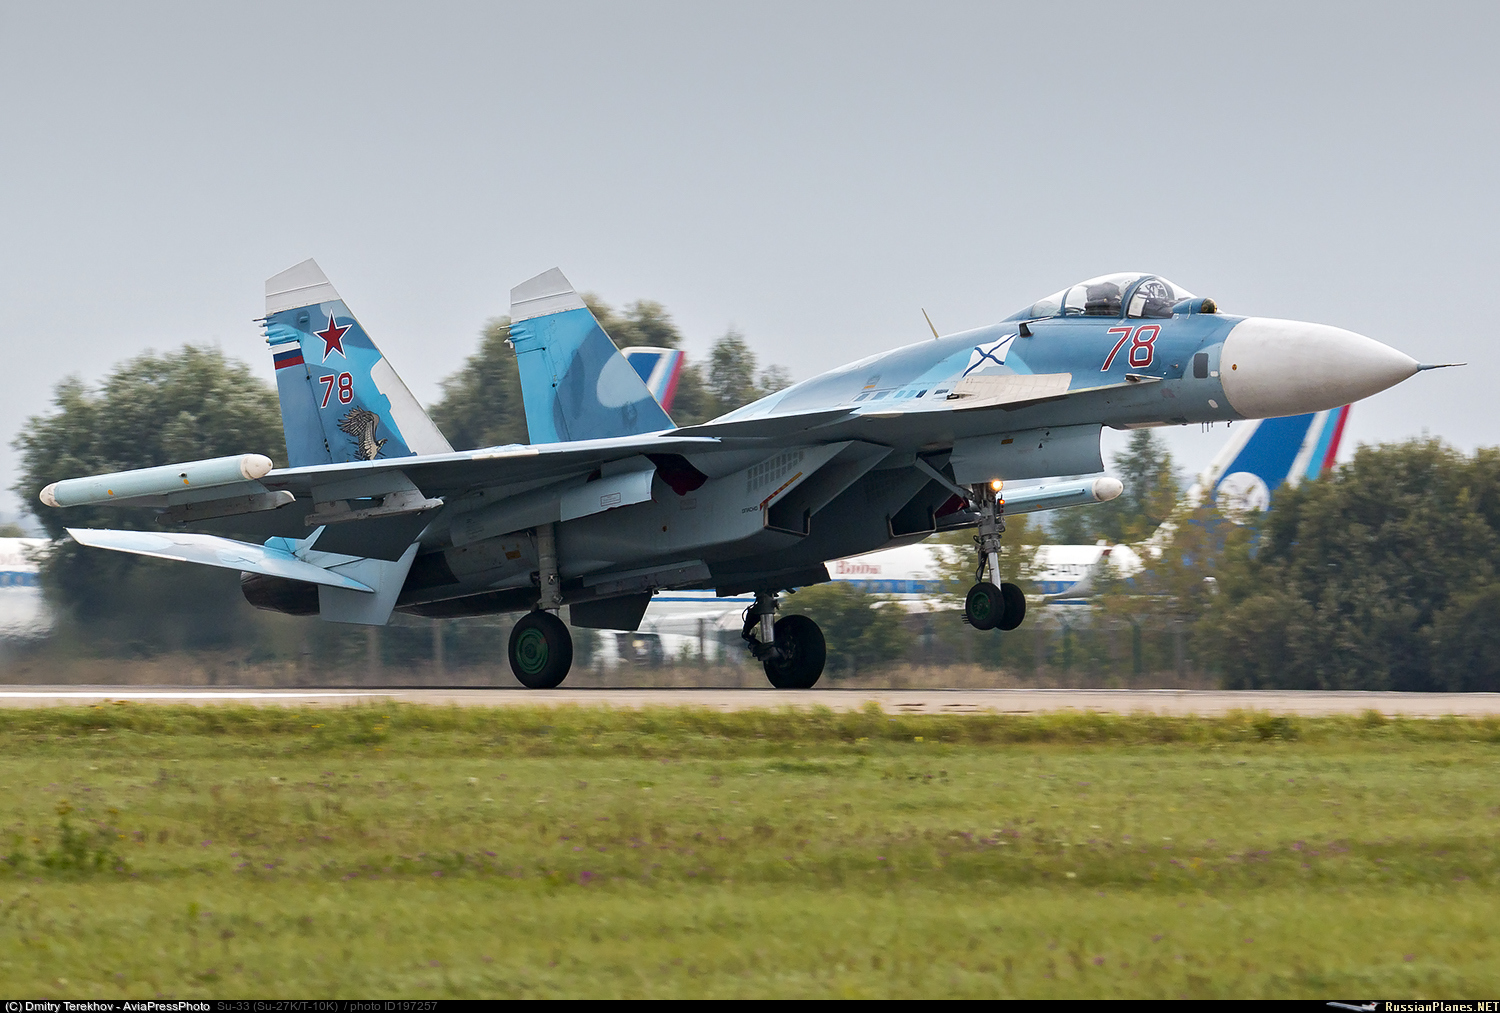 http://russianplanes.net/images/to198000/197257.jpg